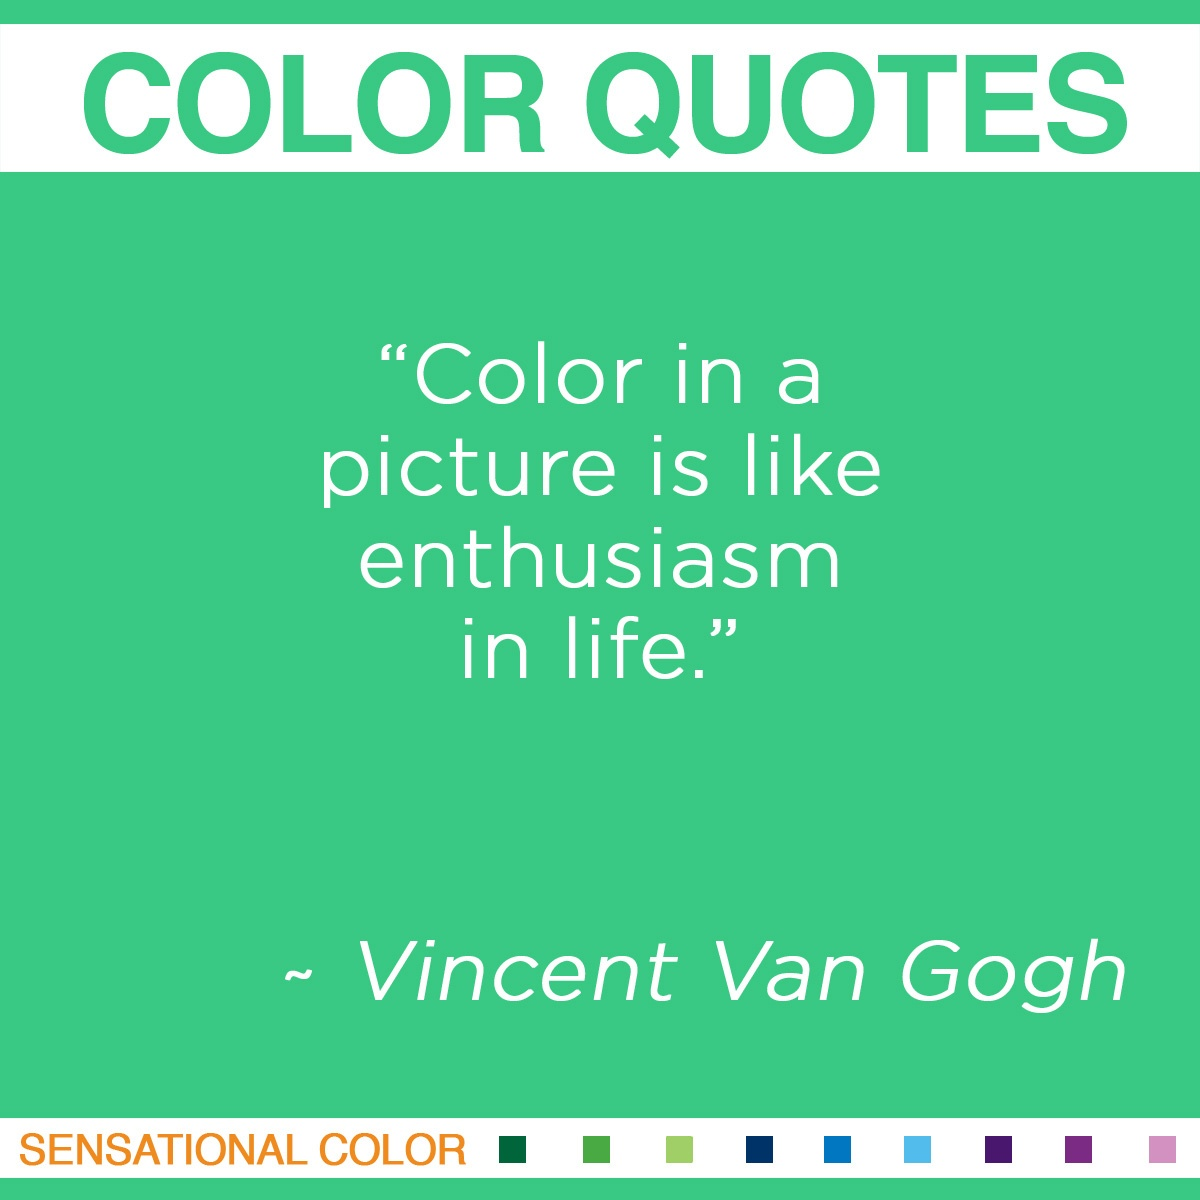 """Color in a picture is like enthusiasm in life."" - Vincent Van Gogh"